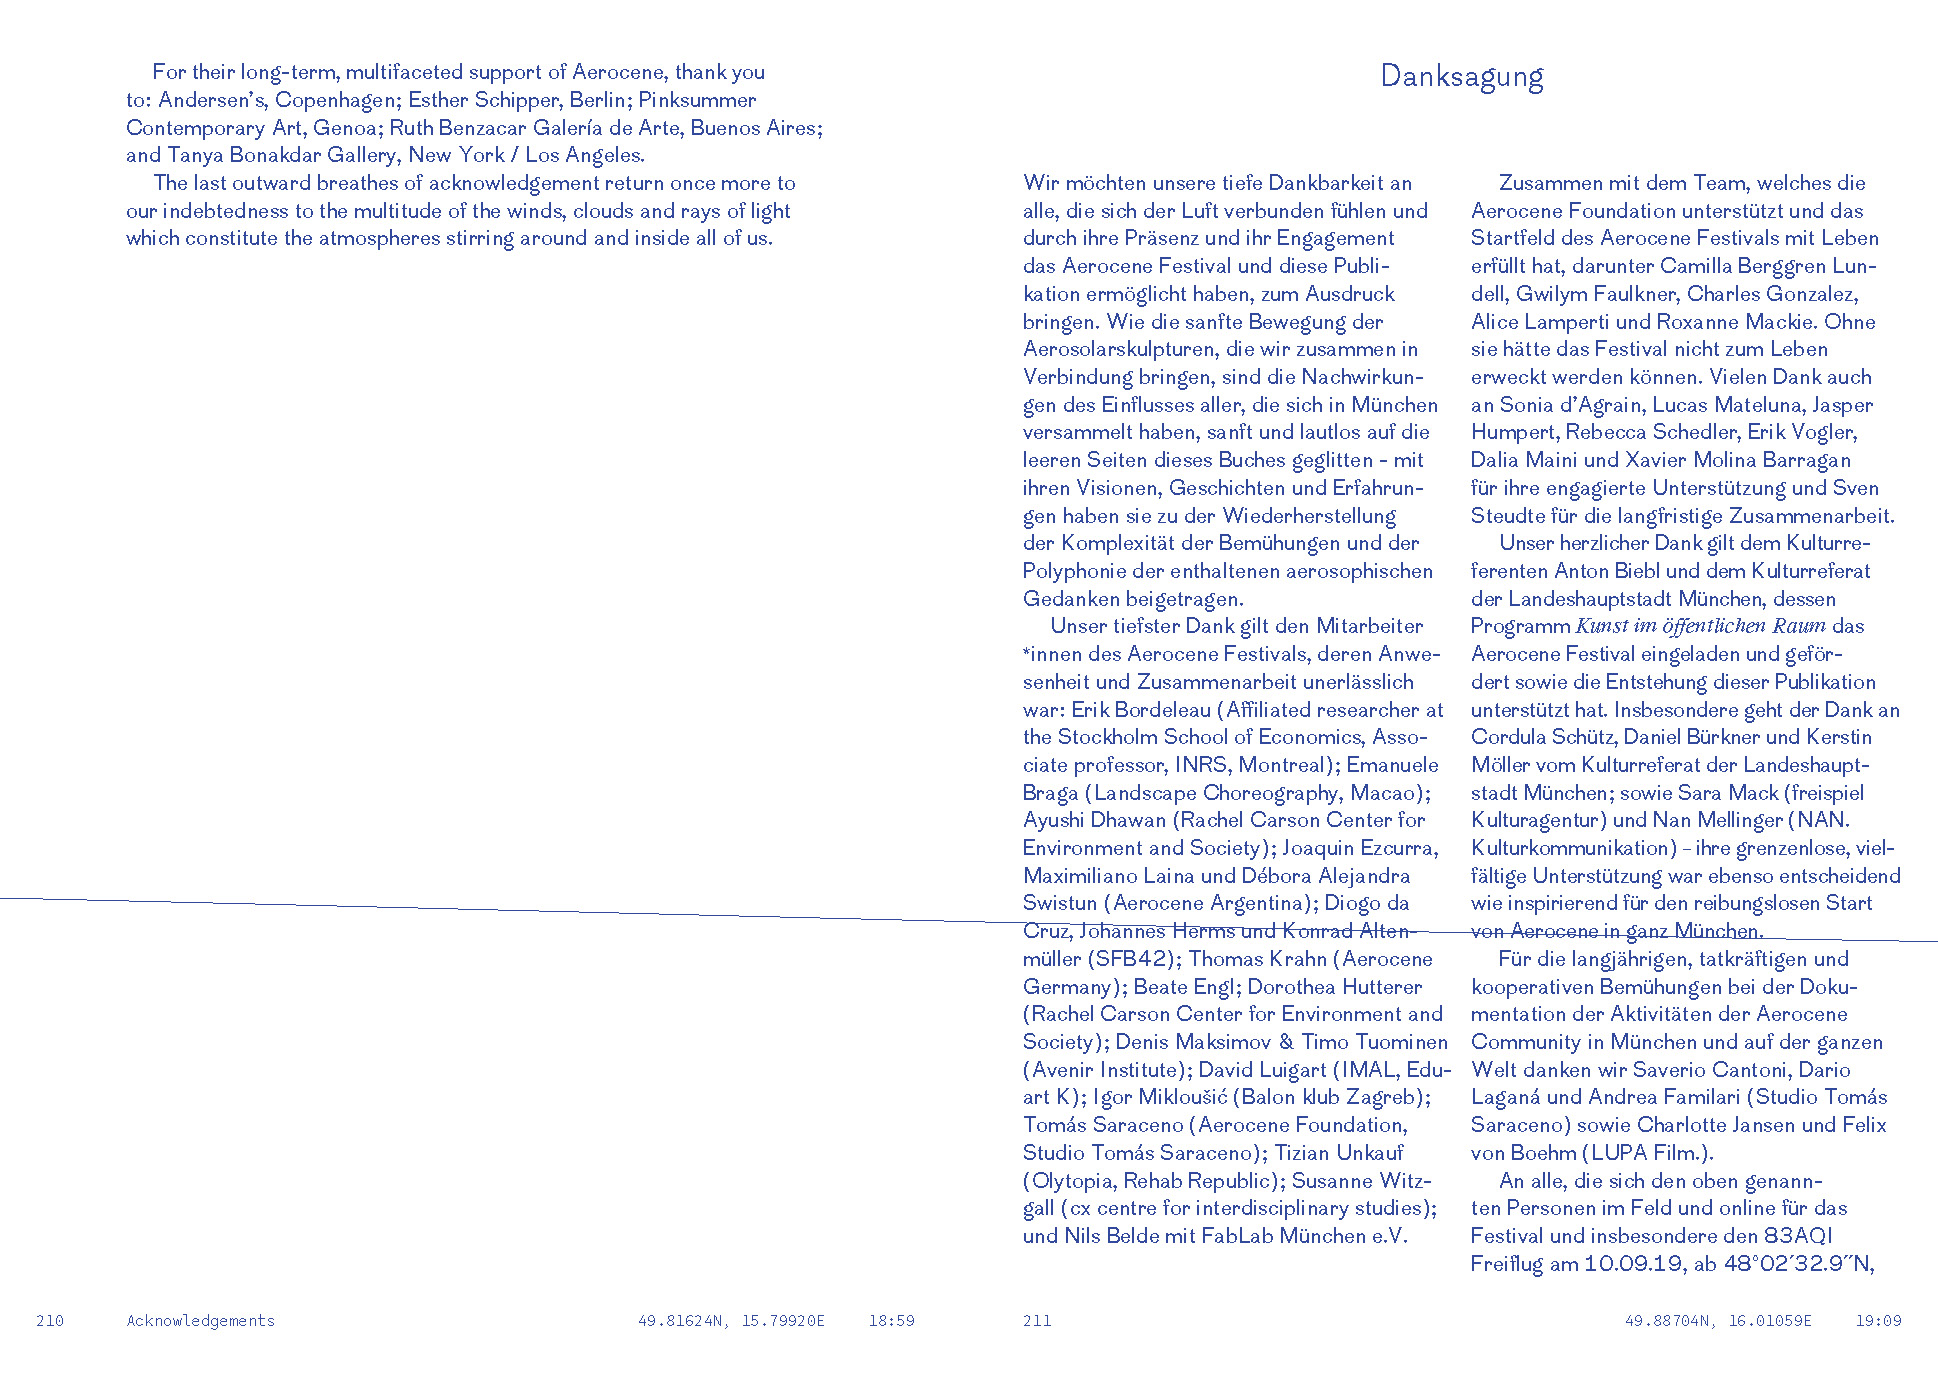 20AE_MovementsfortheAir_Aerocene (1)_Page_106